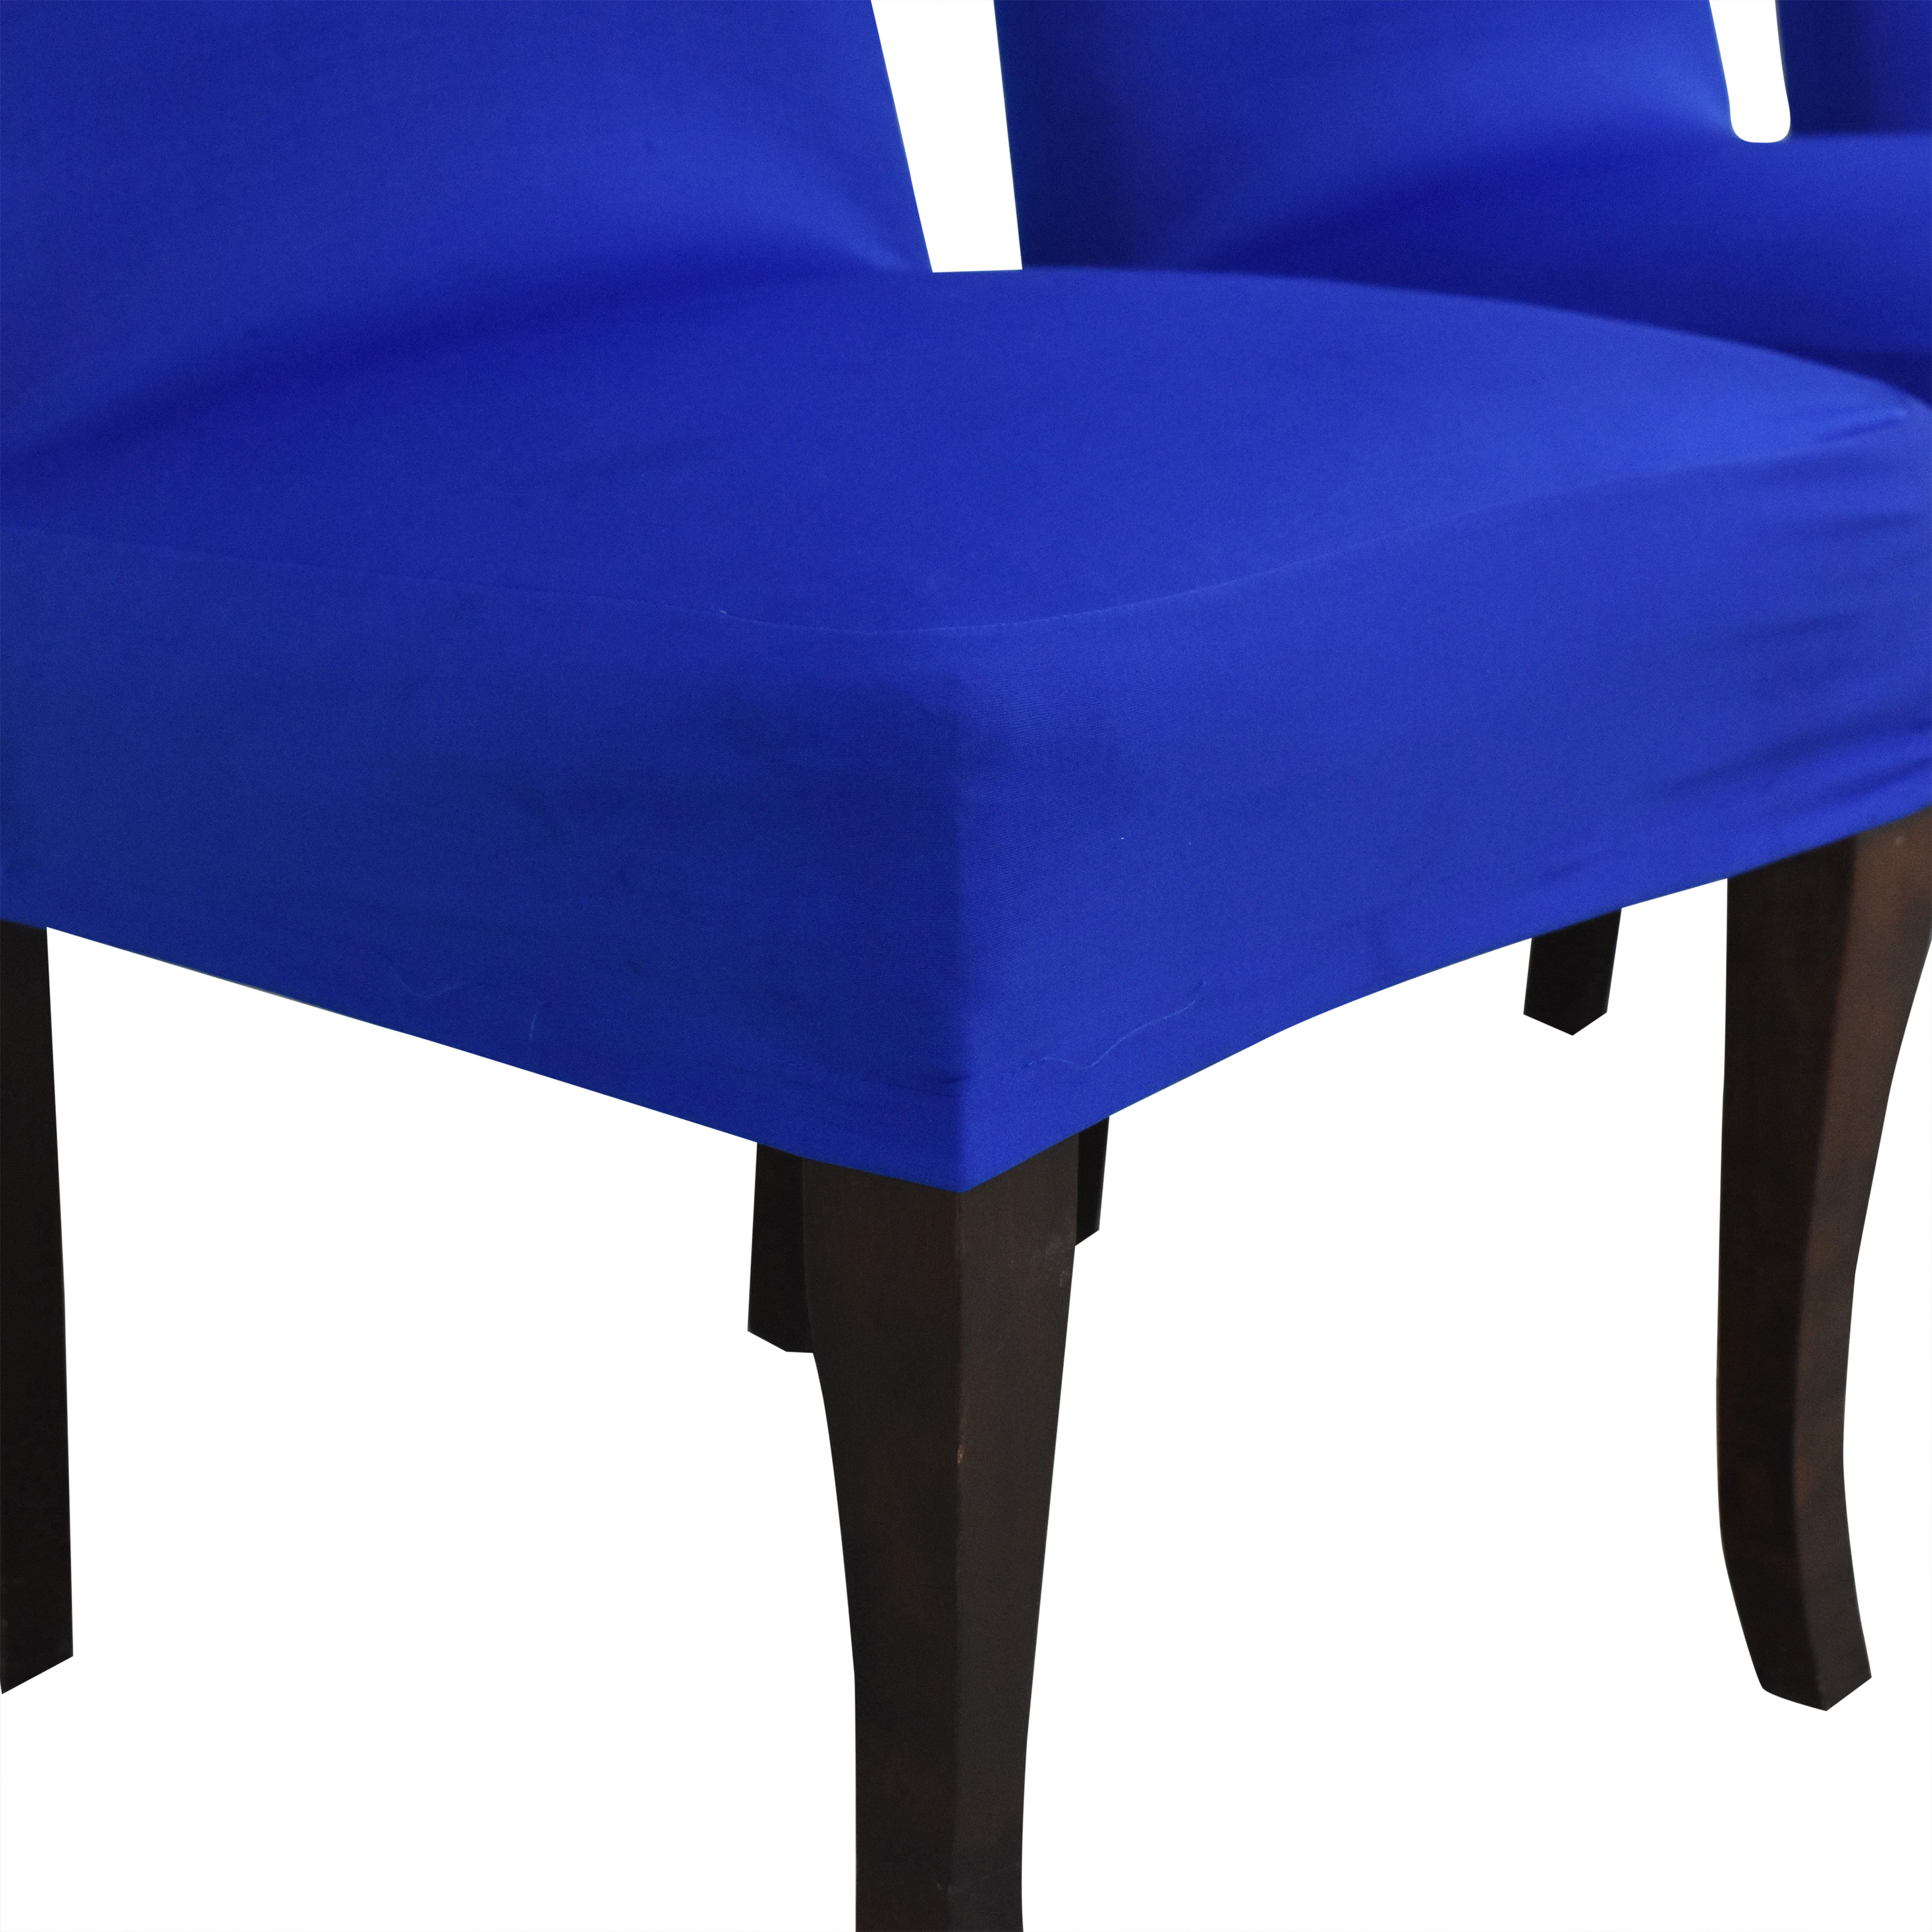 Ballard Designs Slipcovered Couture Chairs / Dining Chairs